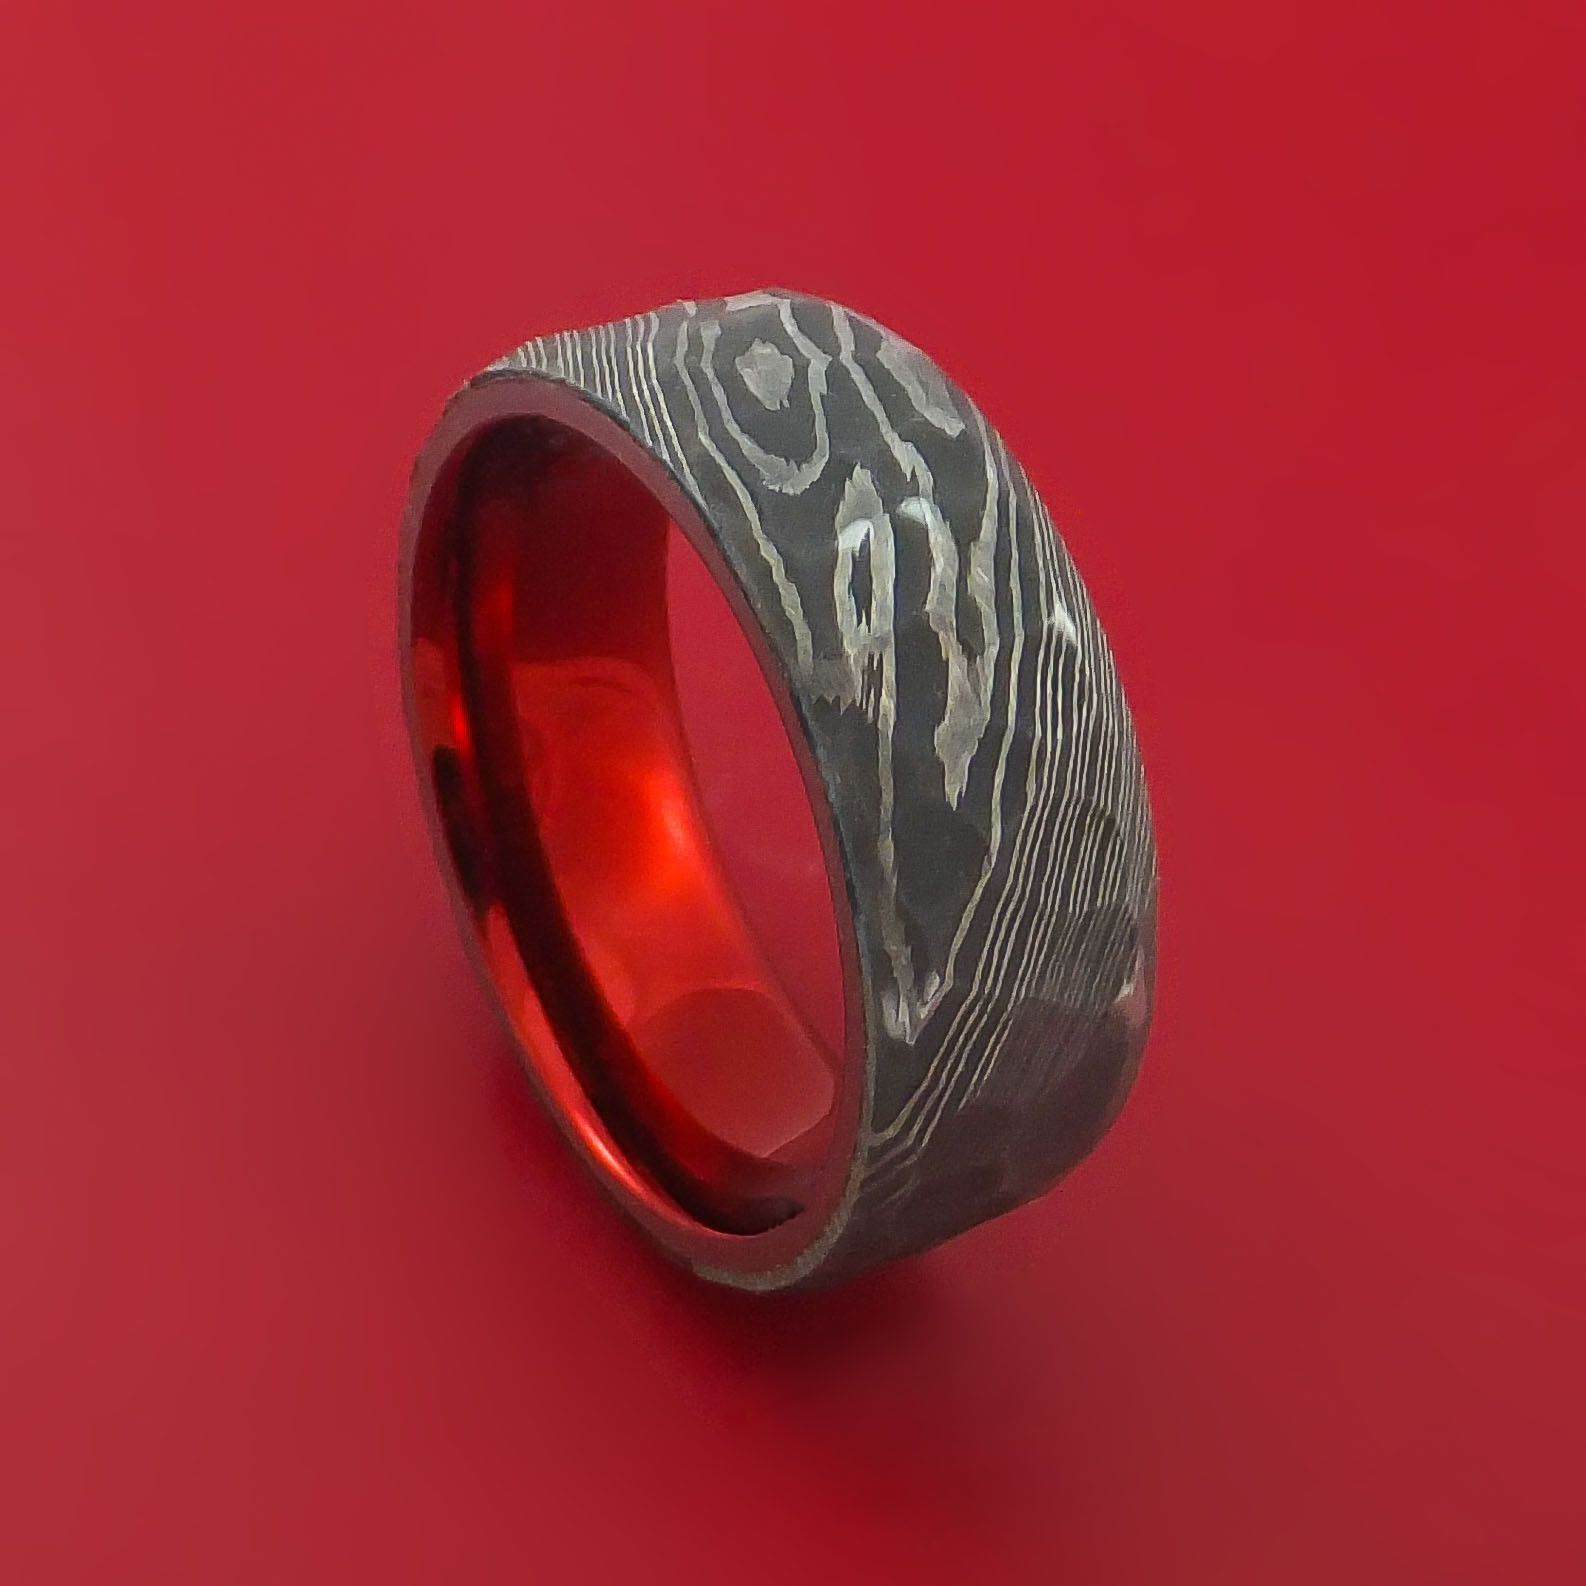 Damascus Steel Ring with Rock Hammer Finish and Anodized Titanium